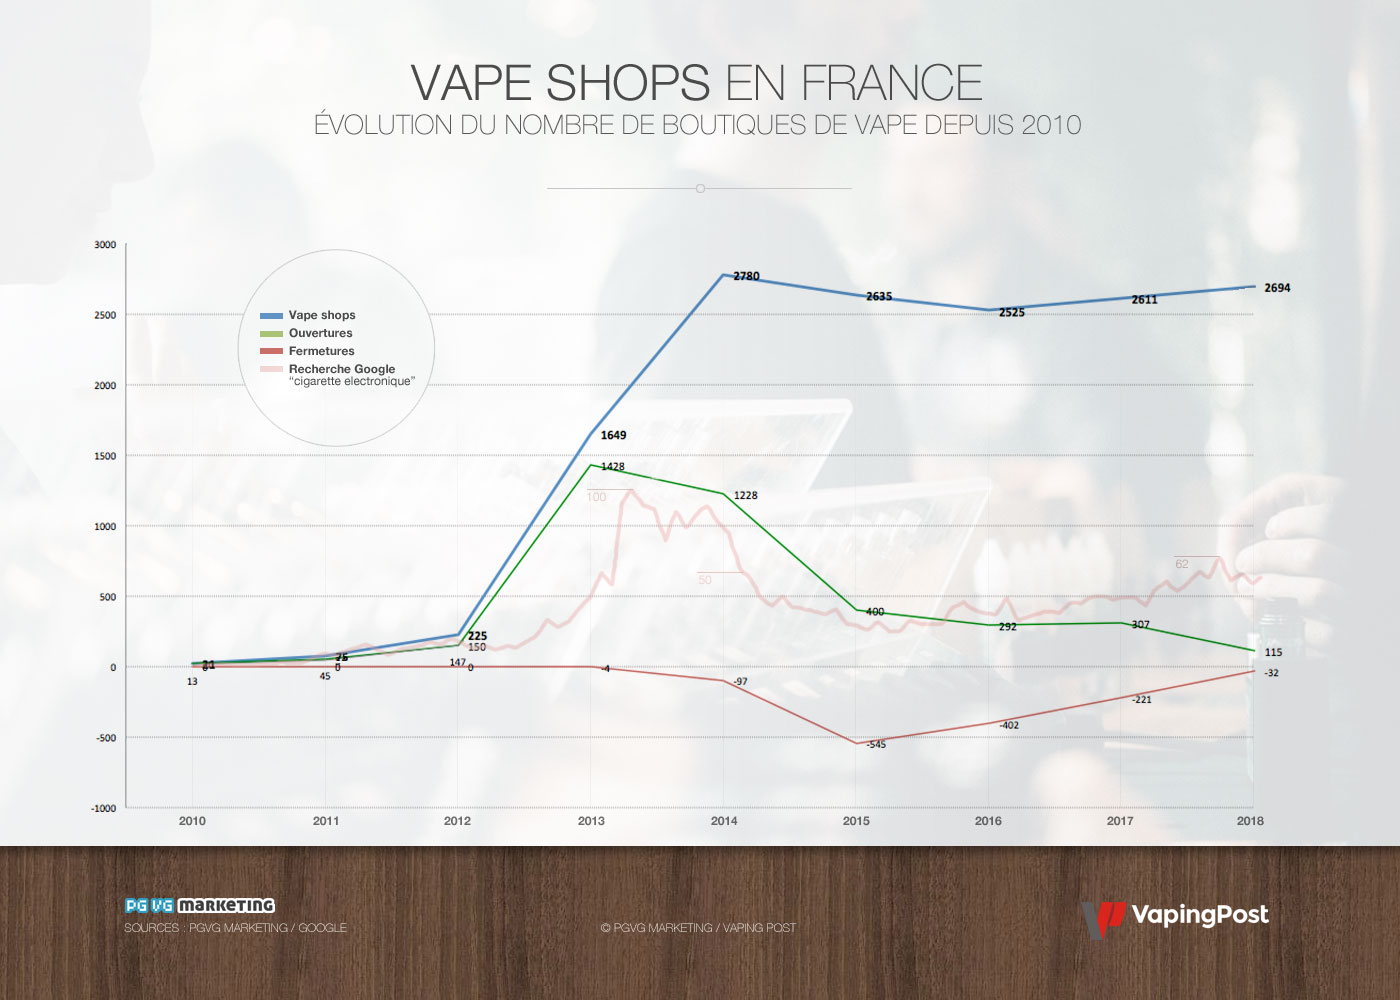 Evolution of vape shops in France since 2010